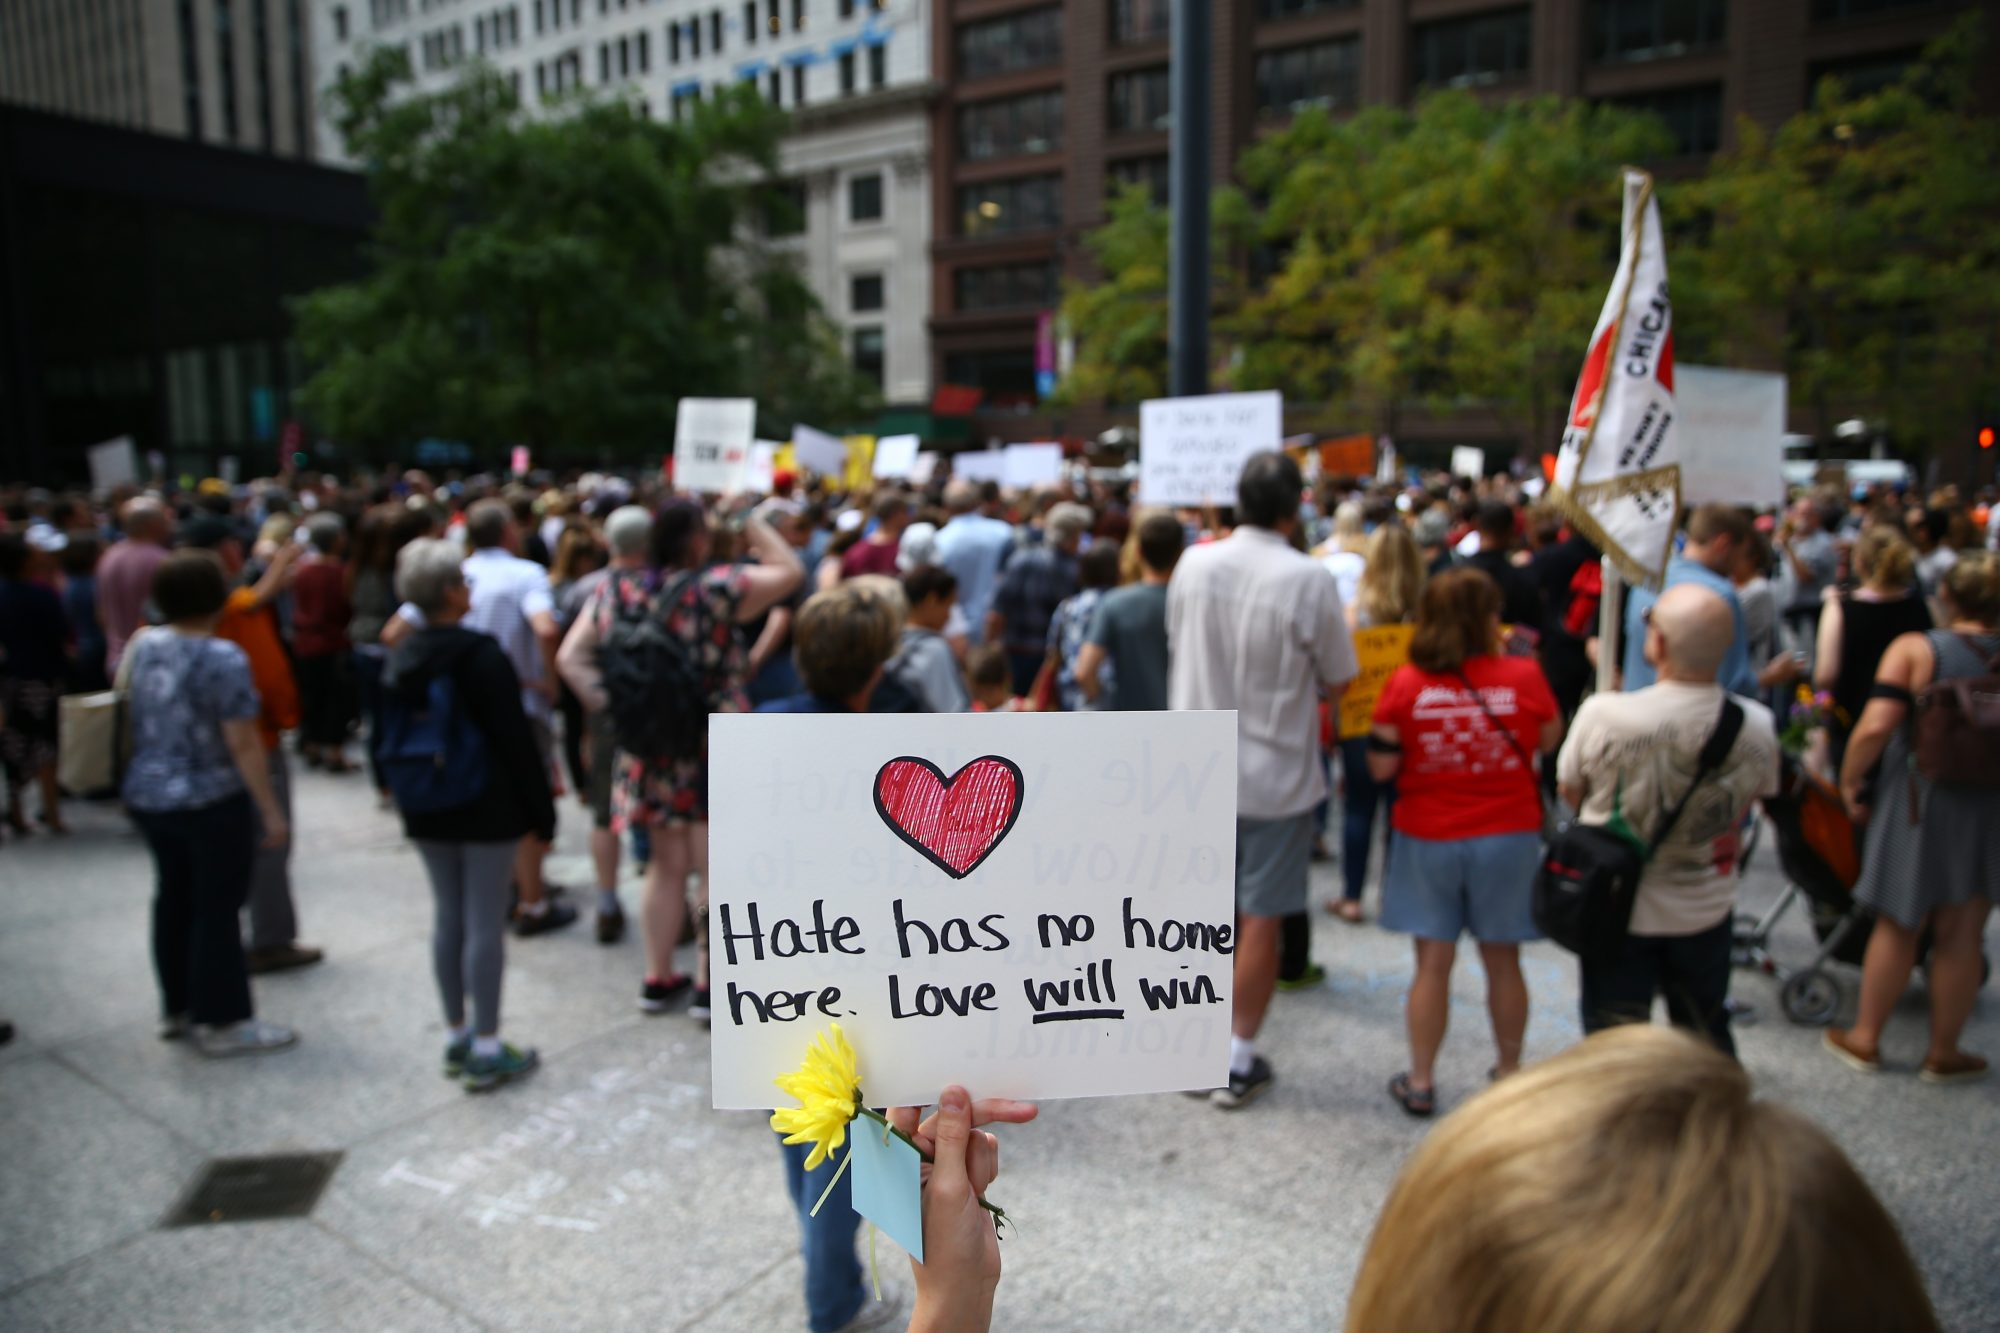 peaceful protesters hold love will win sign